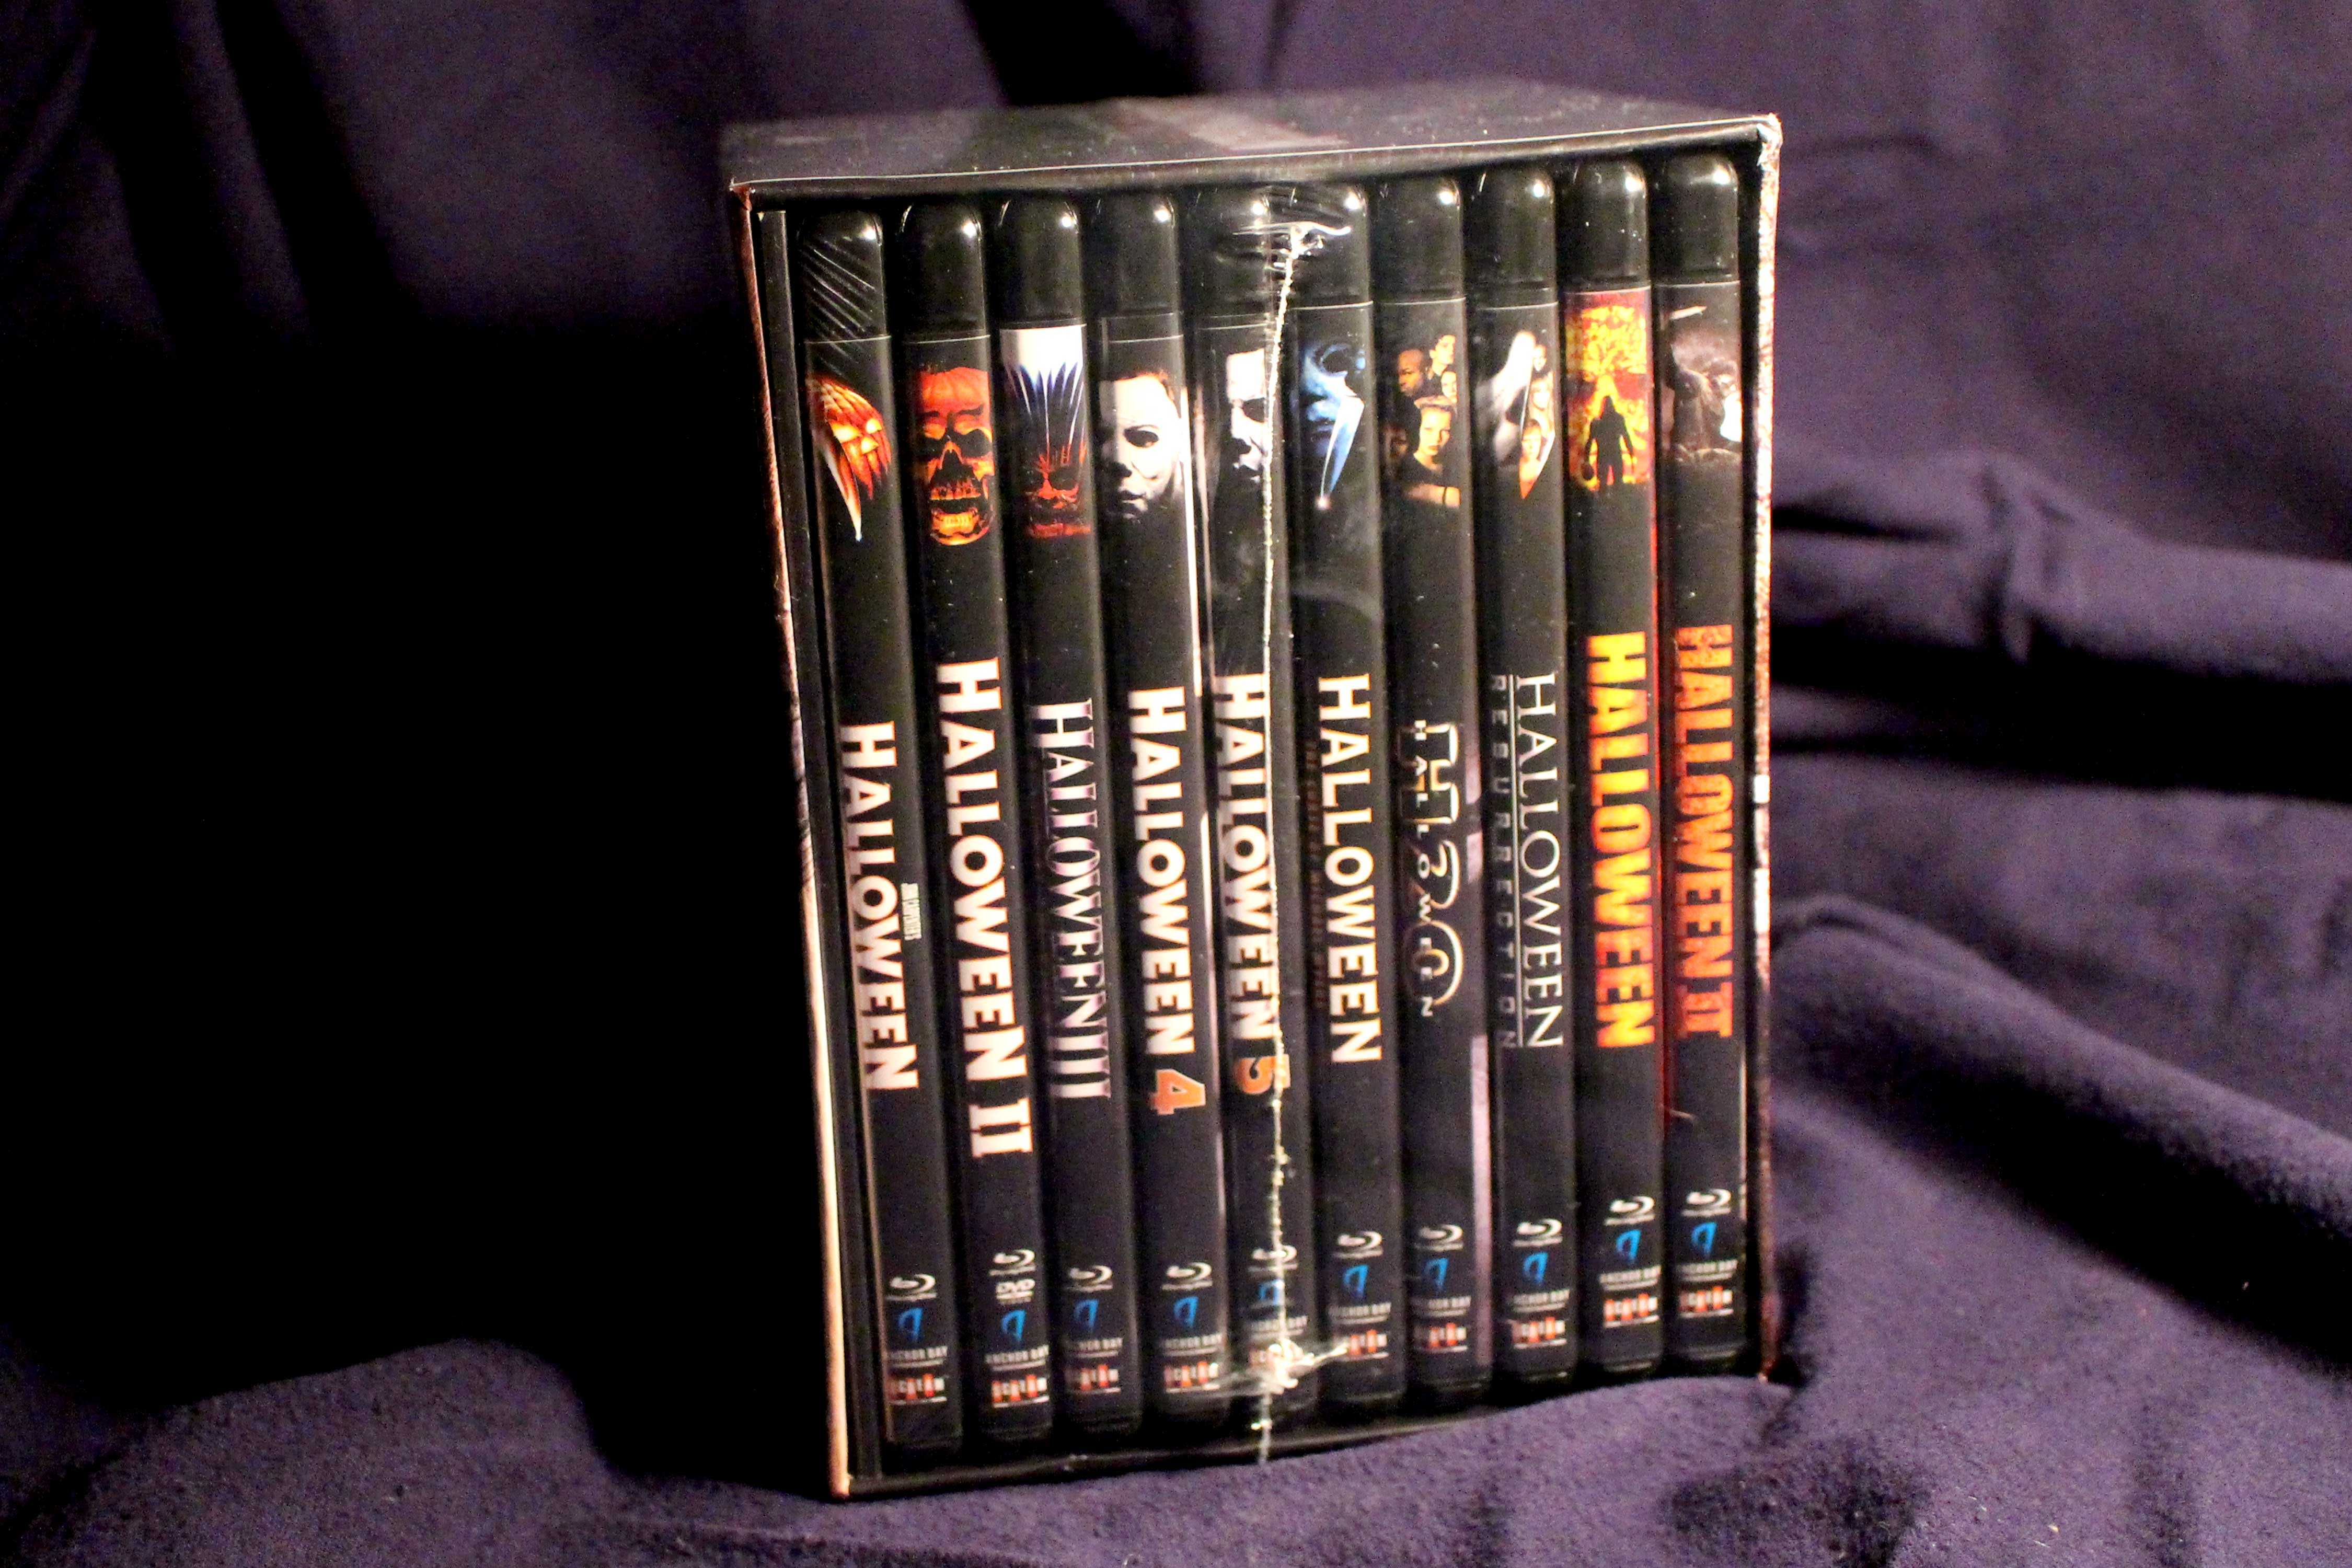 Halloween Dvd Box Set.Halloween The Complete Collection Slashes Its Way To The Store